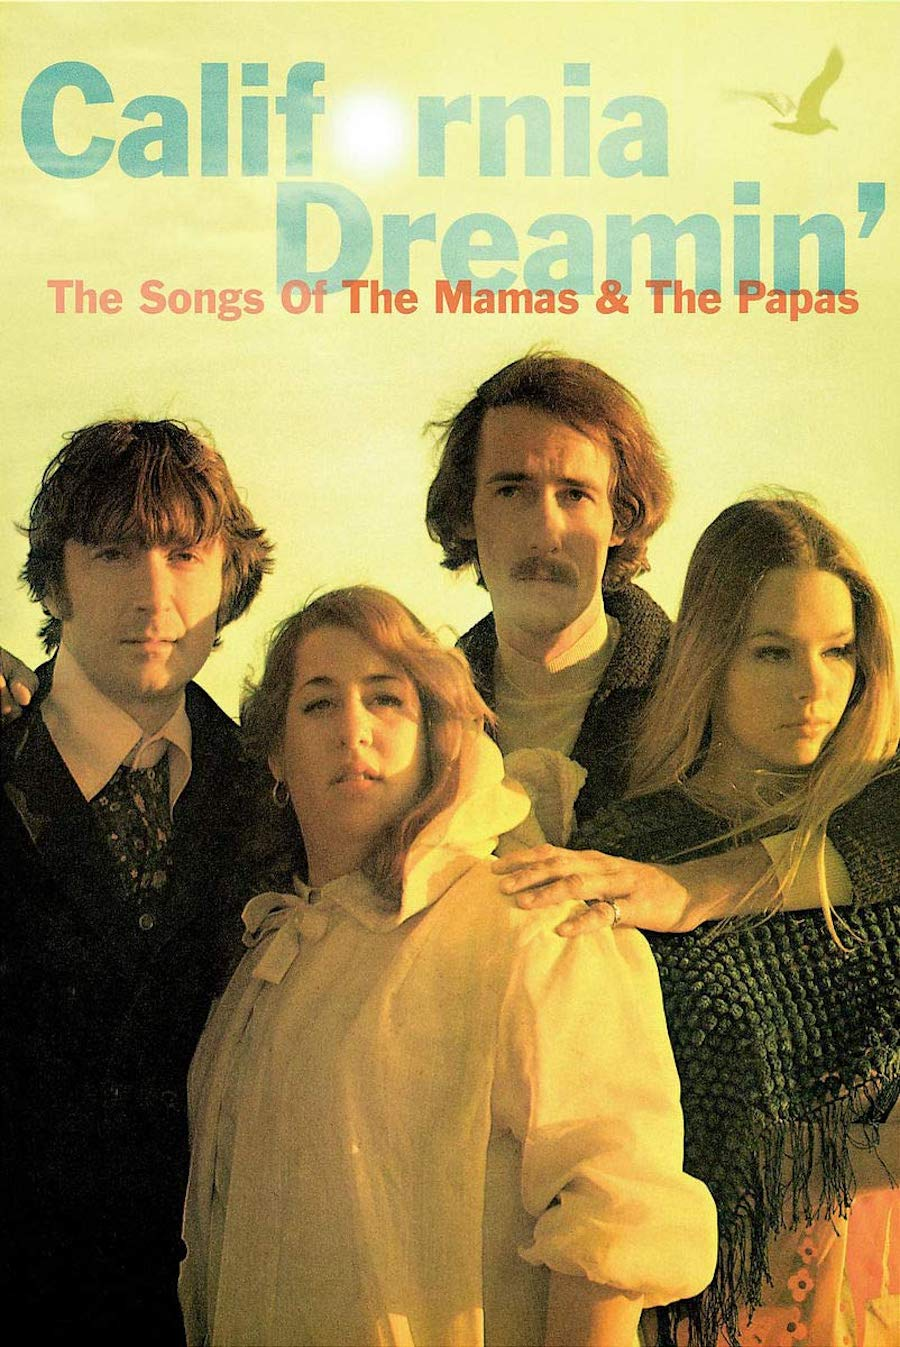 mamas and papas california dreamin'